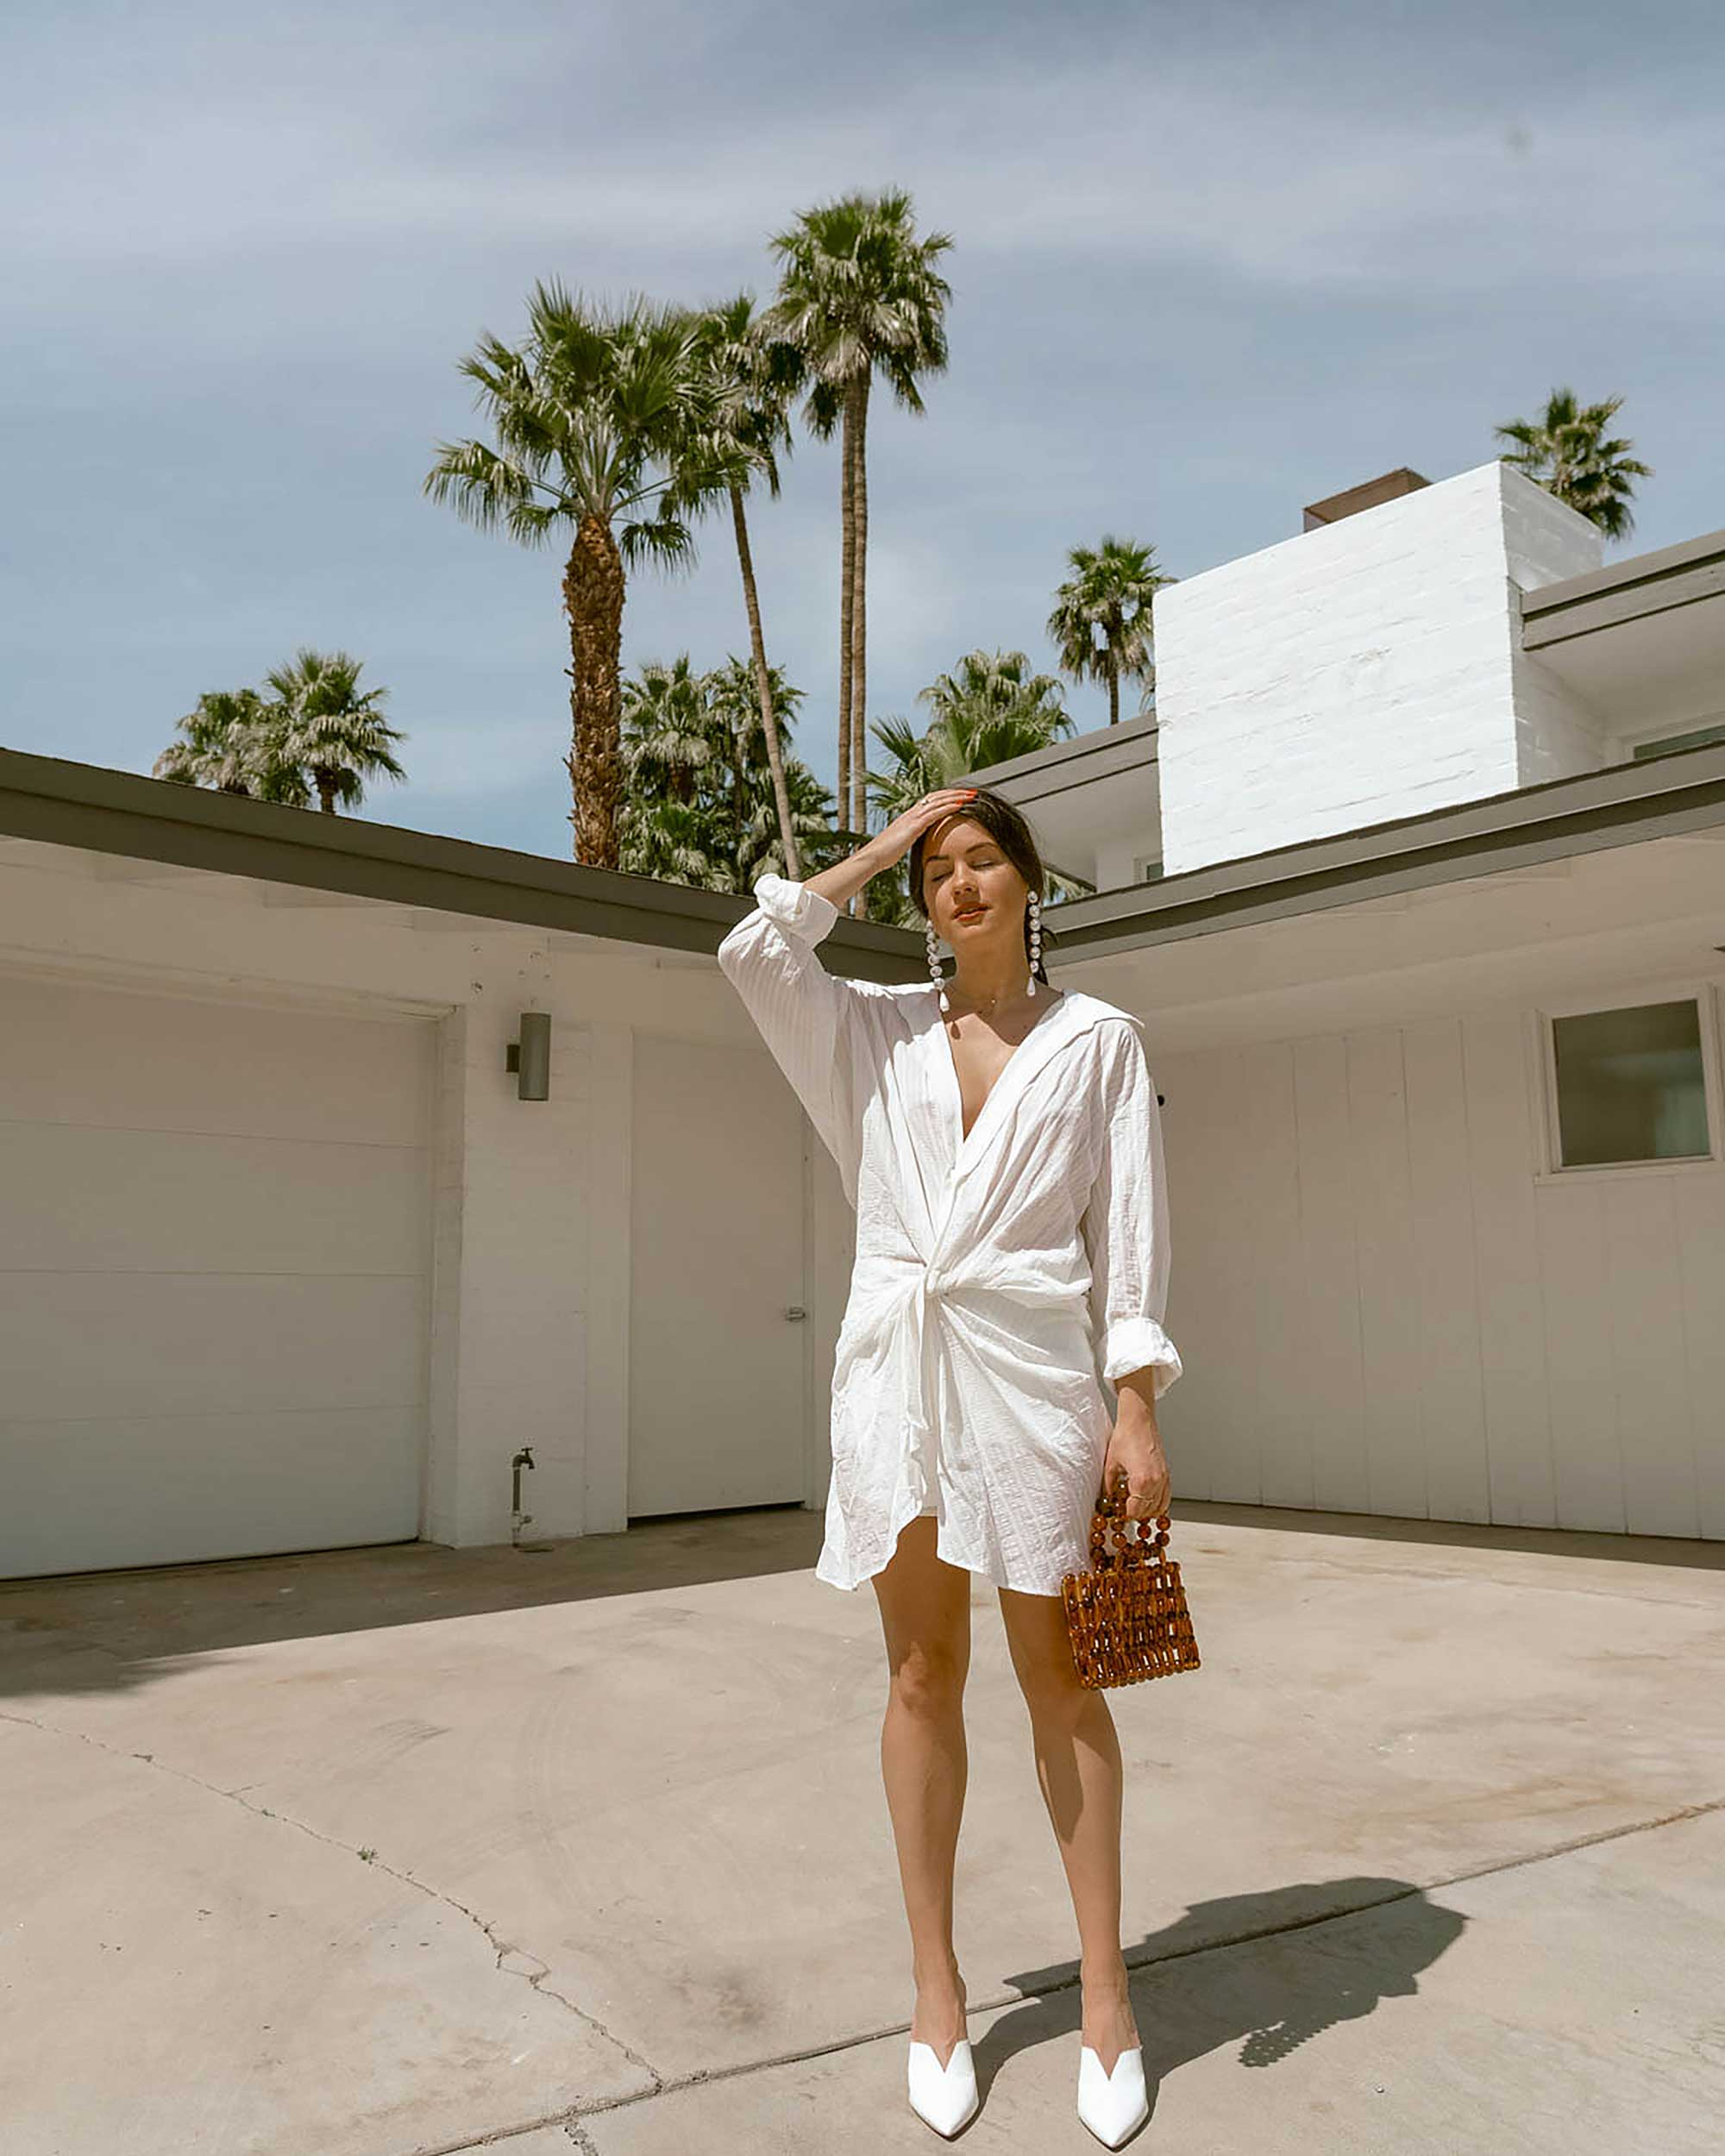 Sarah Butler of Sarah Styles Seattle wears Jacquemus Alassio draped white cotton mini dress and Cult Gaia Acrylic Cora Clutch in tortoise shell brown Palm Springs Outfit | @sarahchristine 4.jpg